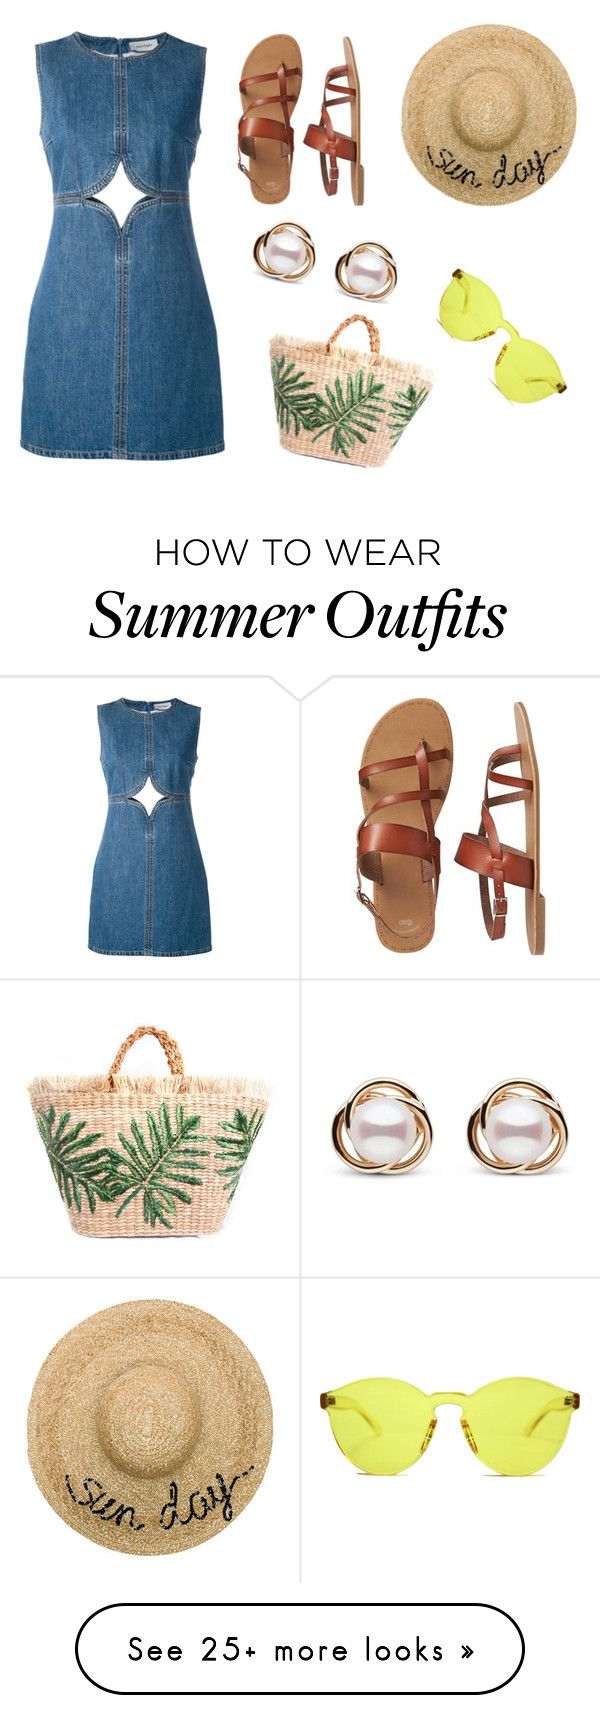 """""""Summer """"Sun Day""""; Suggested items outfit"""" by natsof7 on Pol..."""